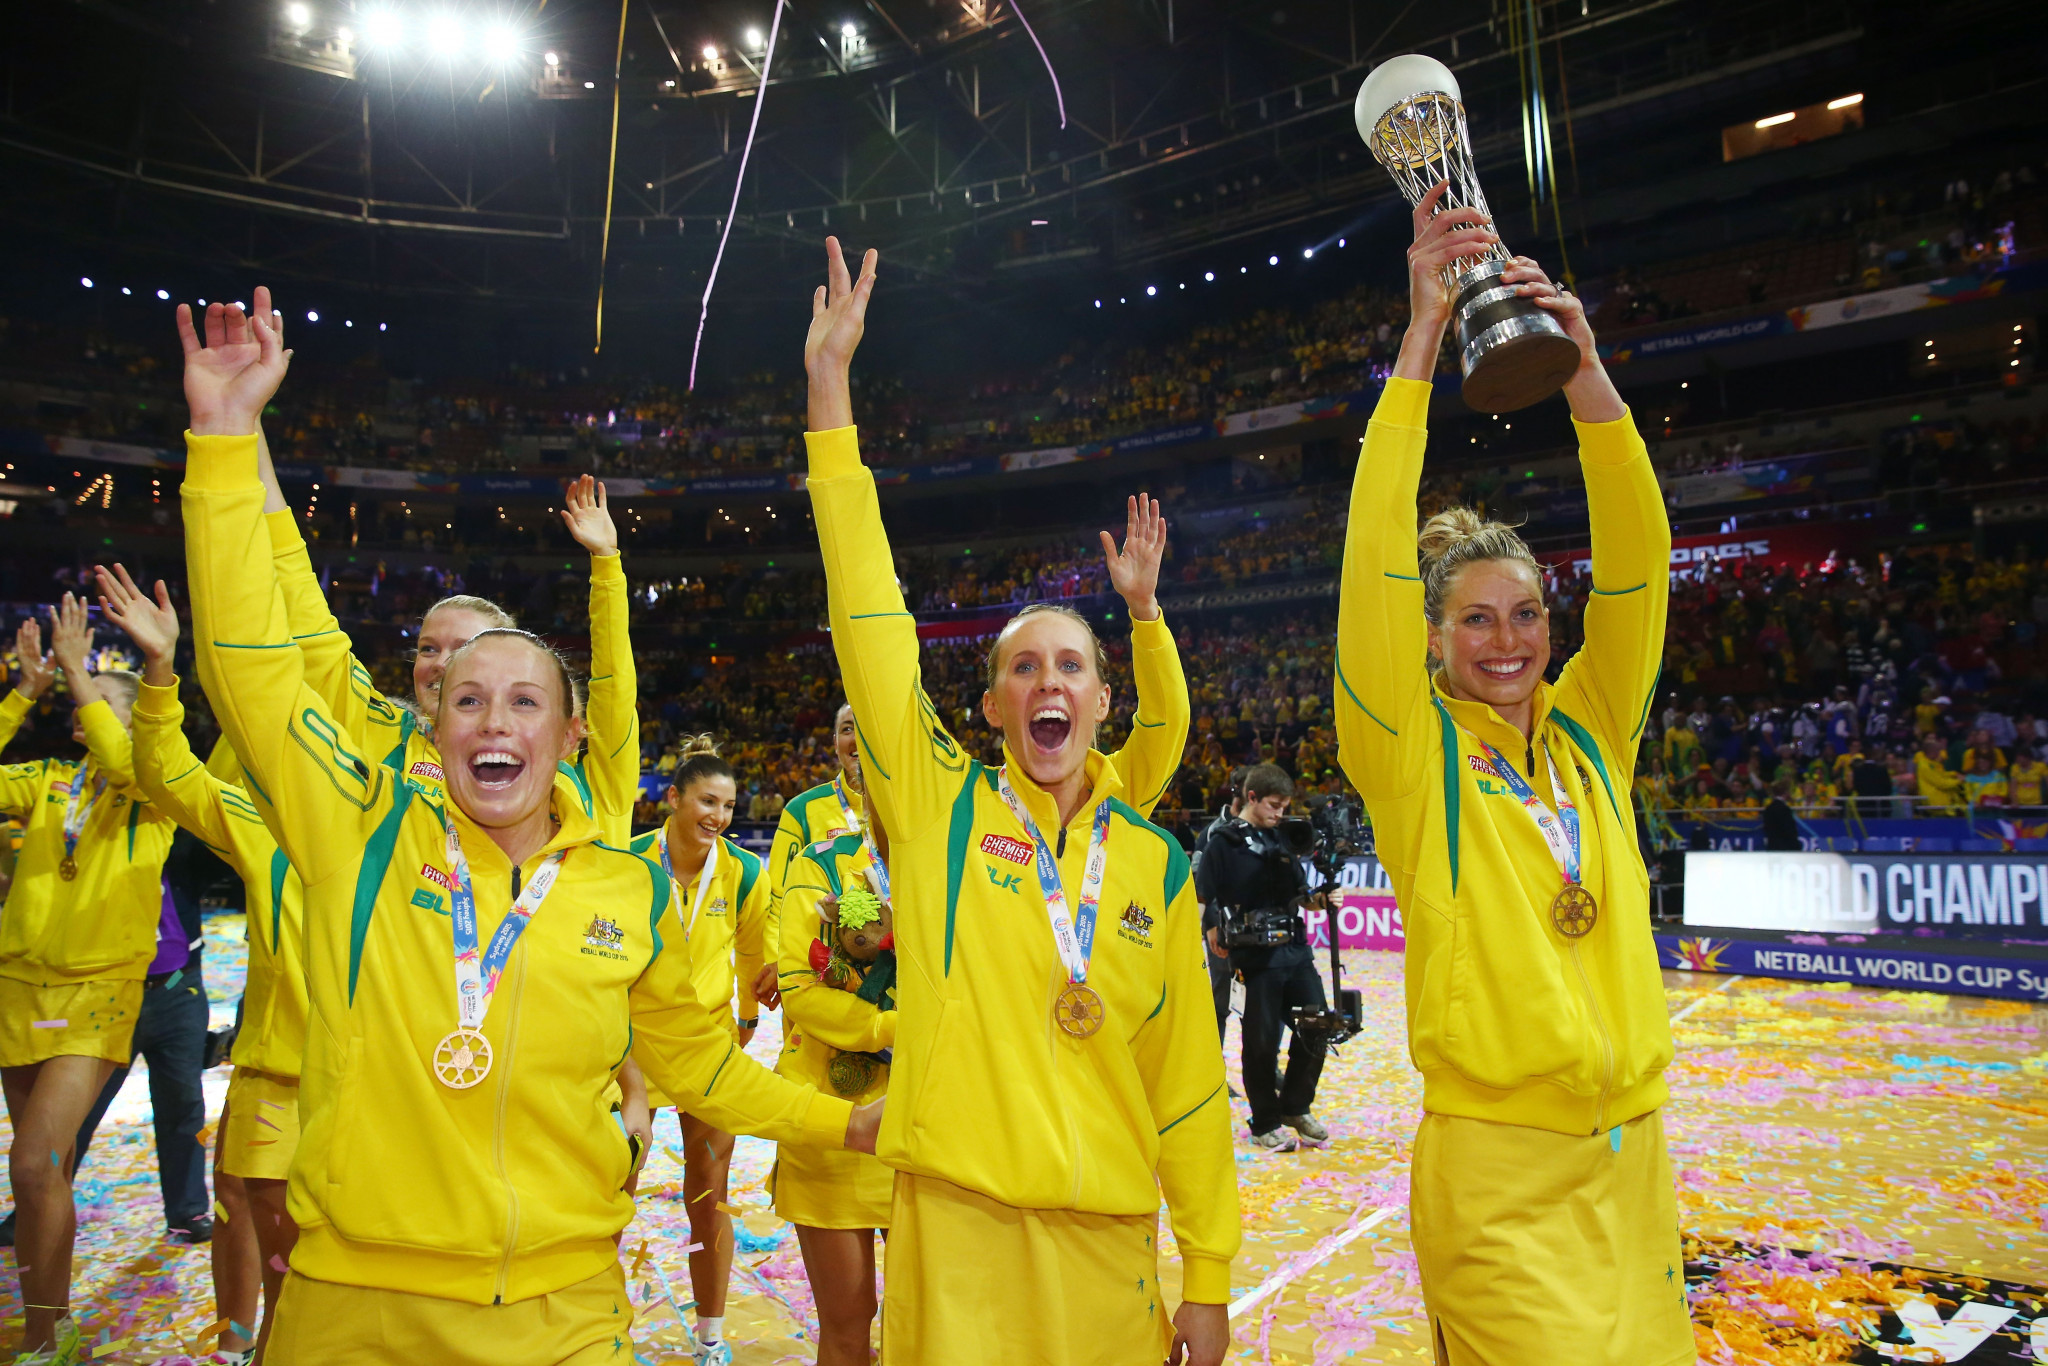 Australia submits bid to host 2027 Netball World Cup